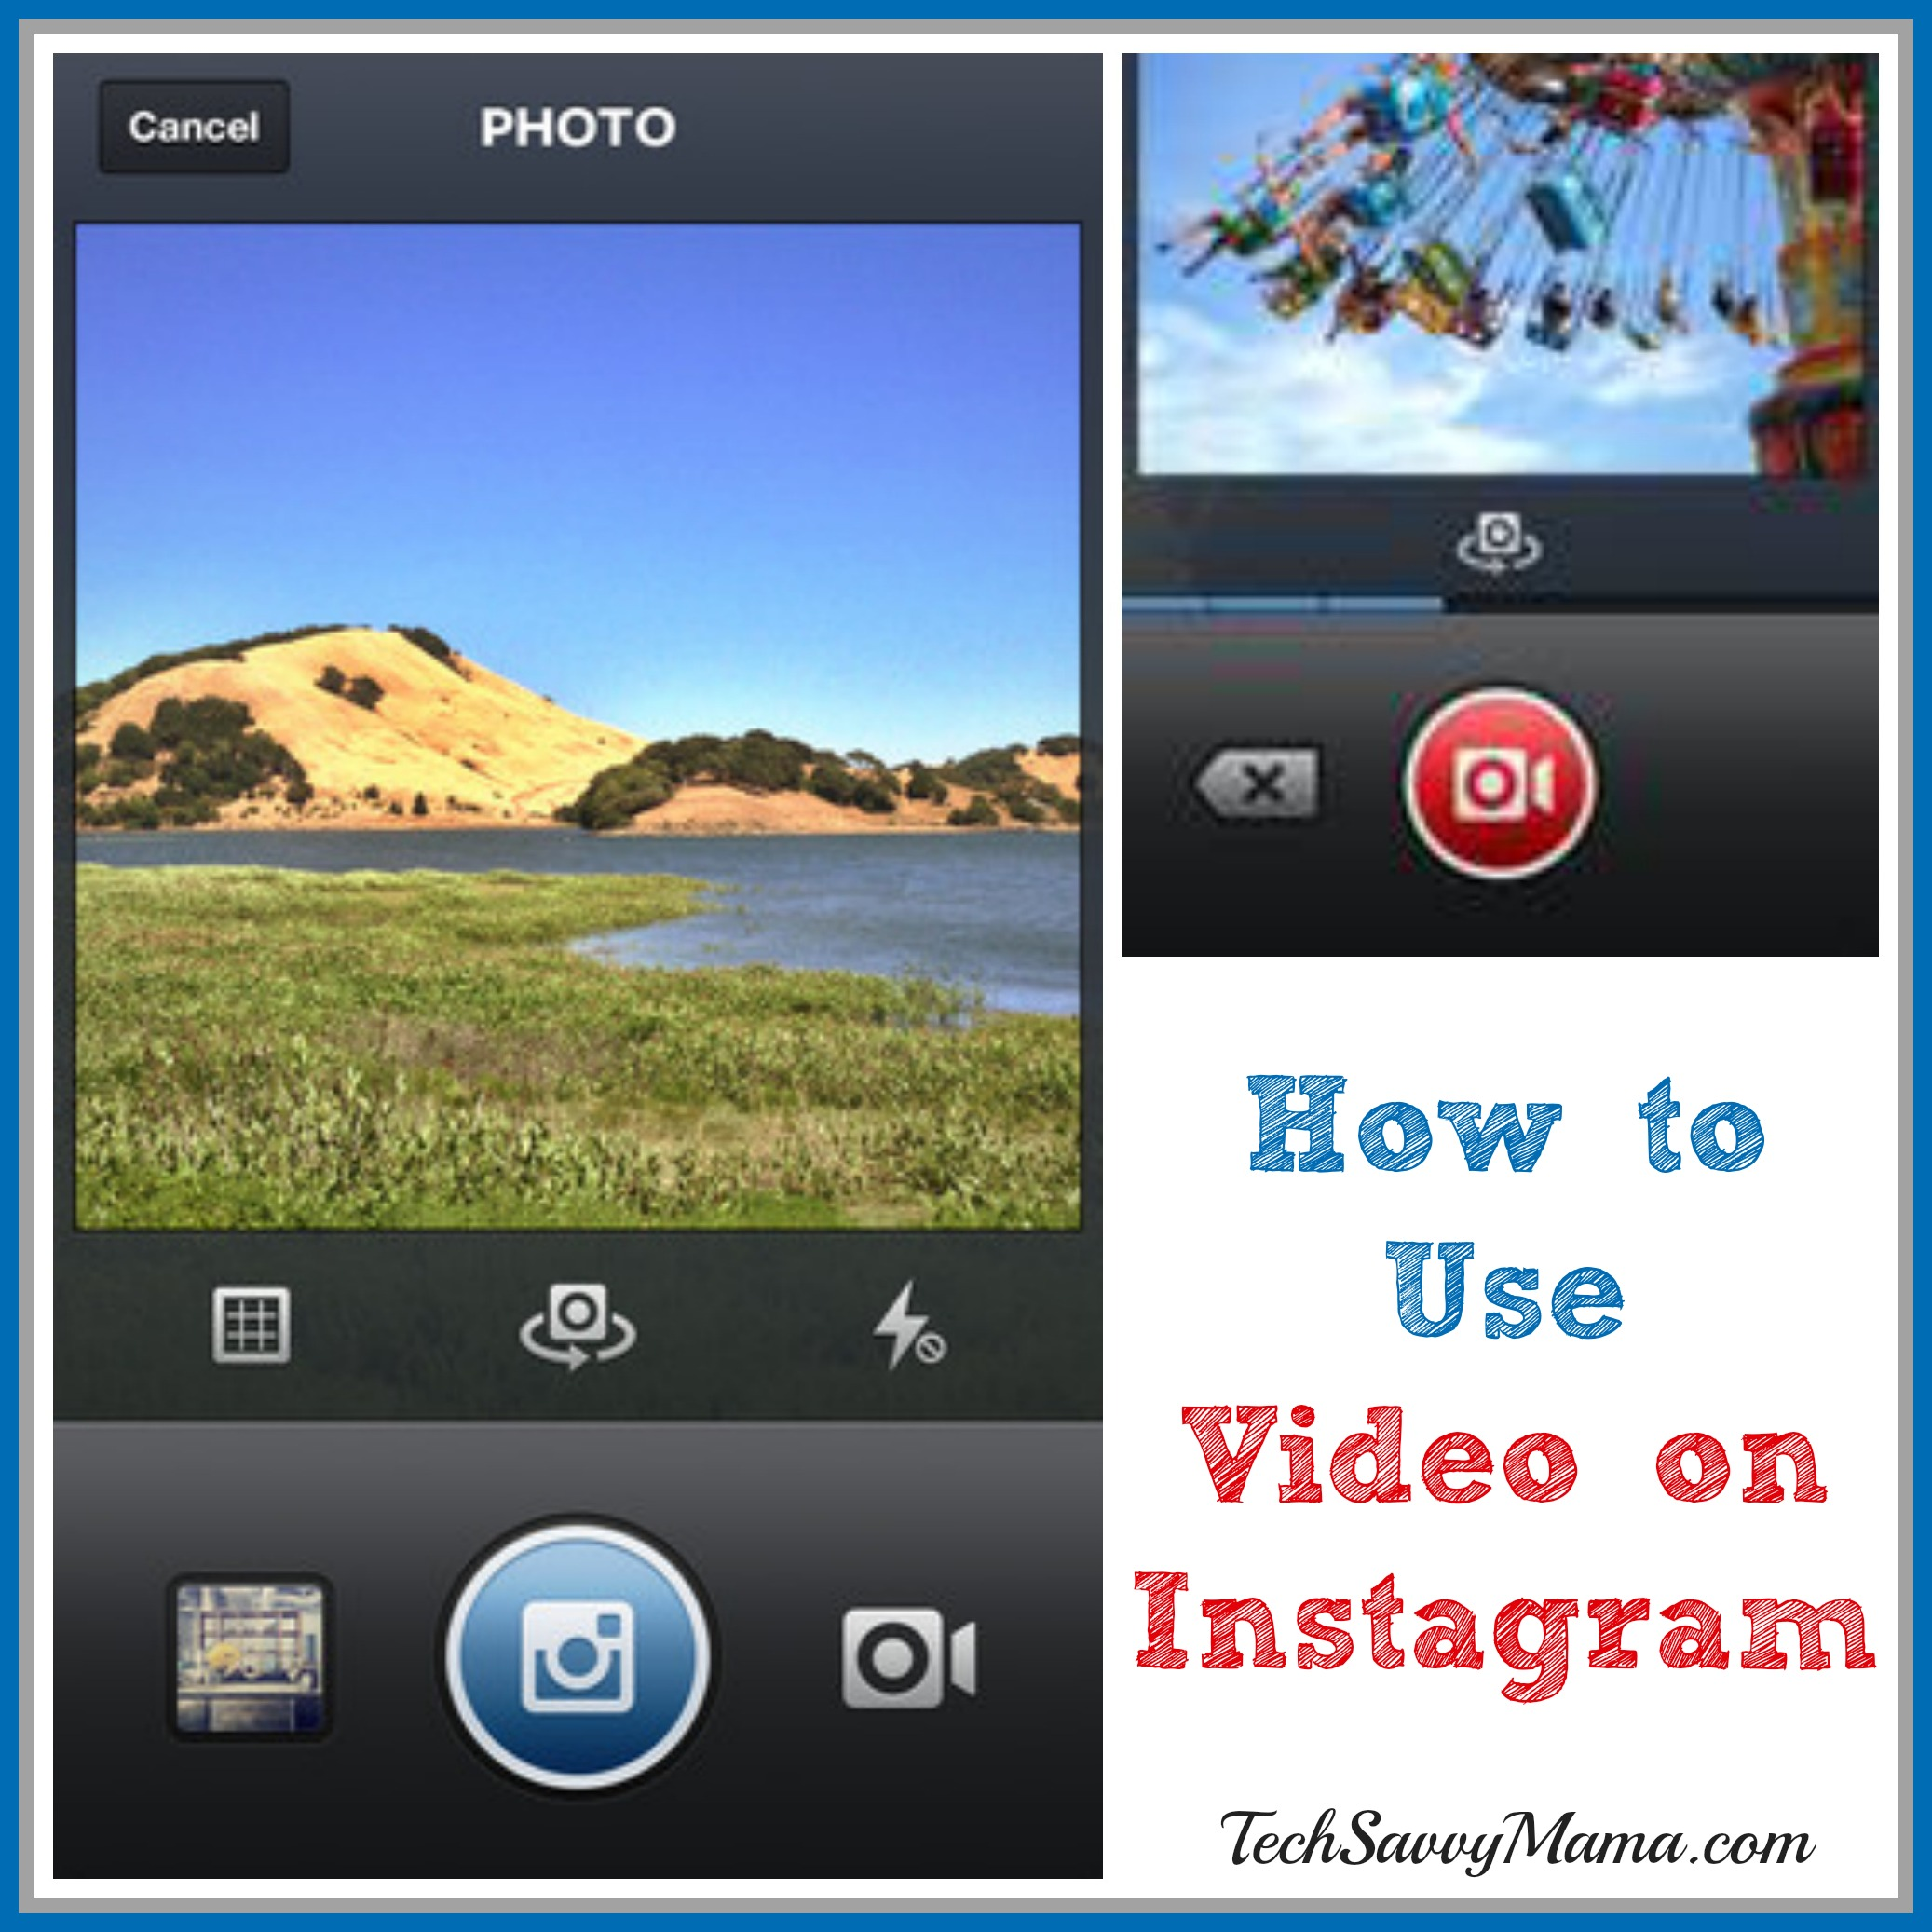 How to Use Video on Instagram (and comparing it to Vine)